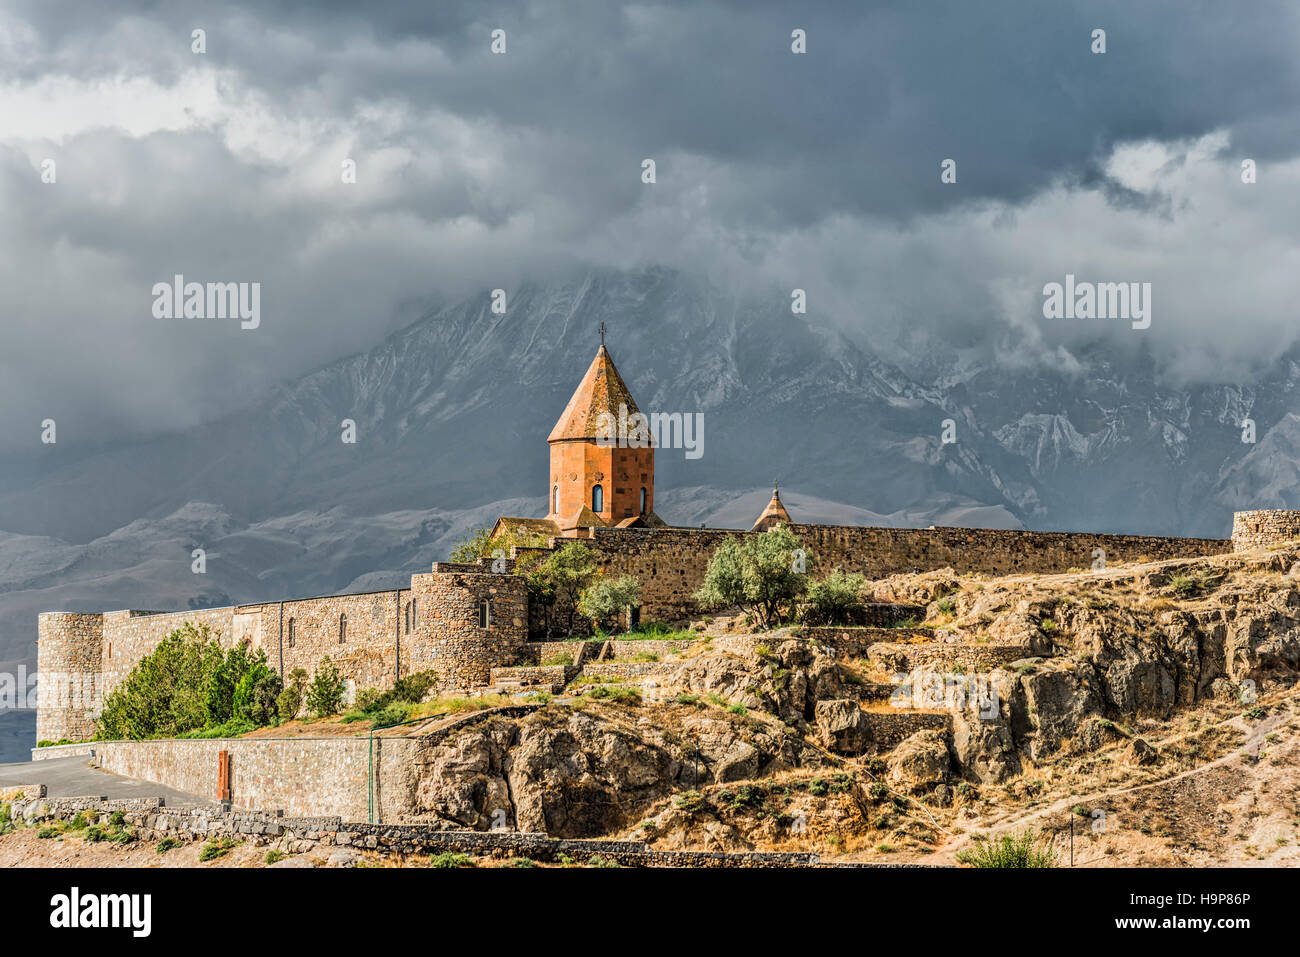 Khor Virap Monastery and apostolic church at the foot of Mount Ararat, Ararat Province, Armenia, Caucasus, Middle Stock Photo